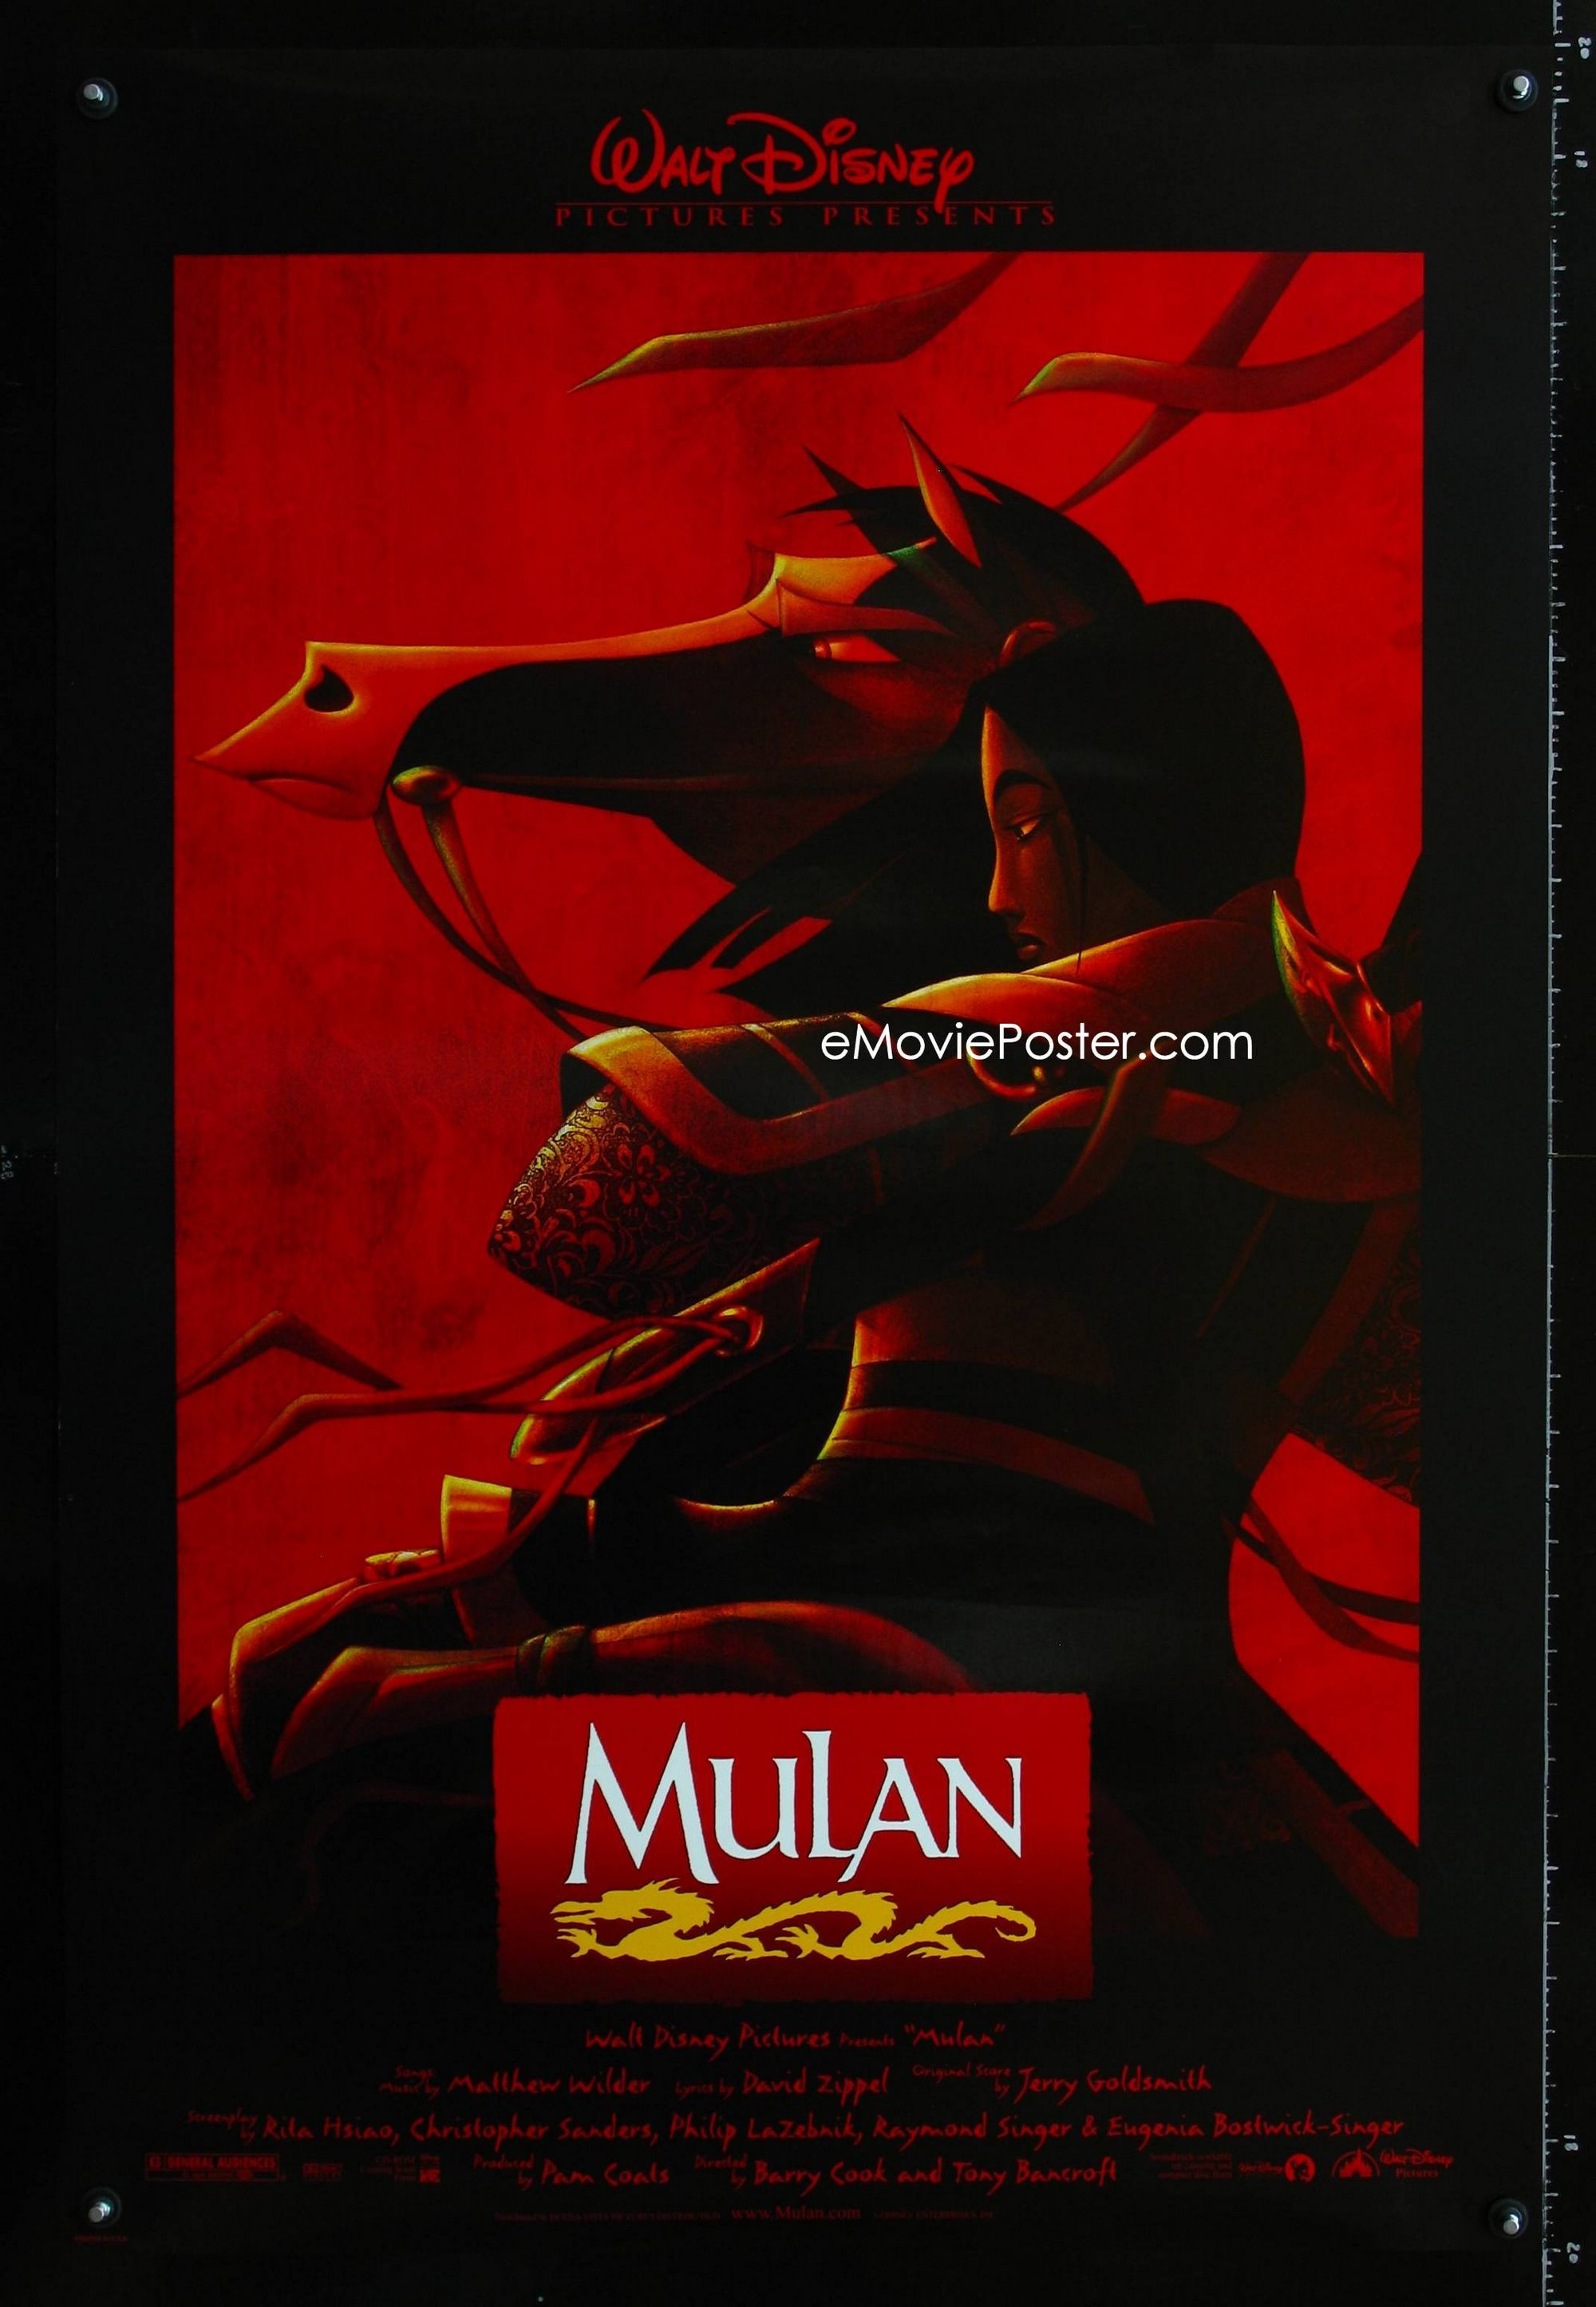 mulan ancient china essay Once upon a time, a long time ago, there lived a girl in ancient china named  mulan mulan's father was a retired general he had come home sick and frail.